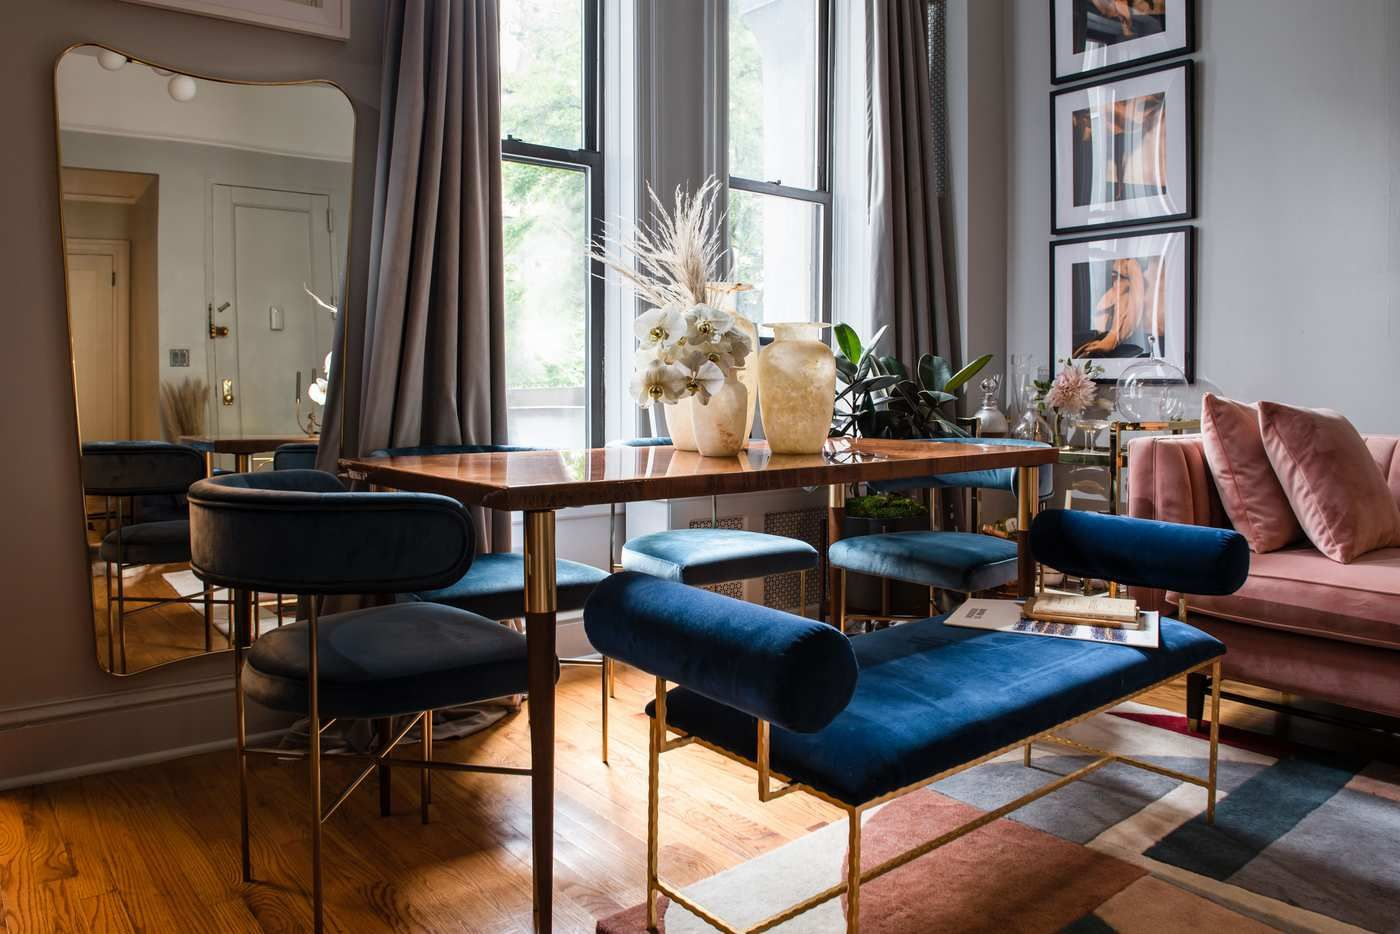 How To Live Large In A 350 Square Foot Studio New York Studio Apartment Home Studio Apartment